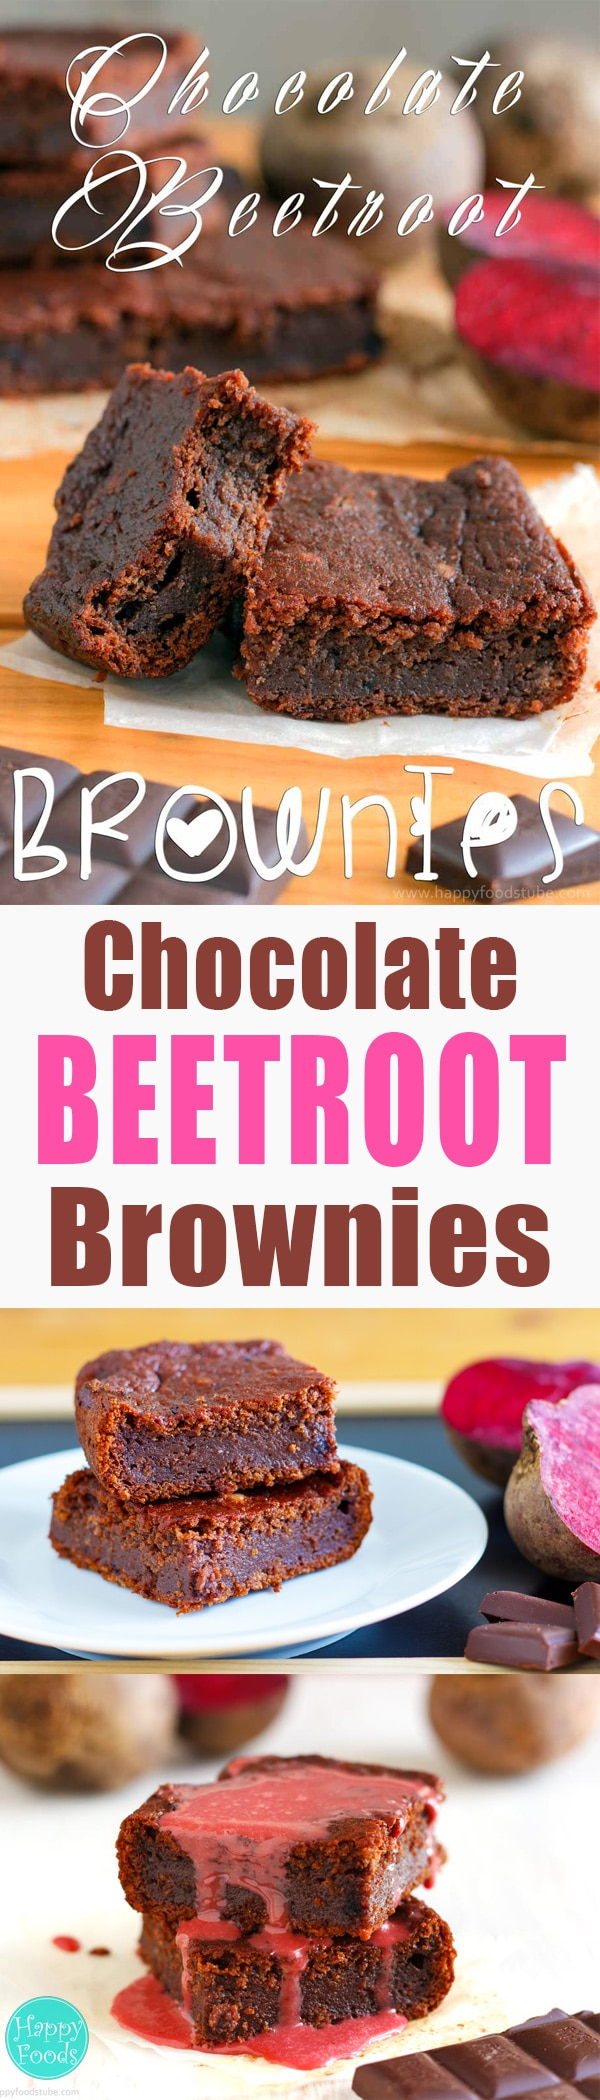 Eggless Dark Chocolate Beetroot Brownies with a hint of beetroot are the right treat for anyone who loves combining ordinary ingredients in a bit unusual way. Family favorite brownie recipe